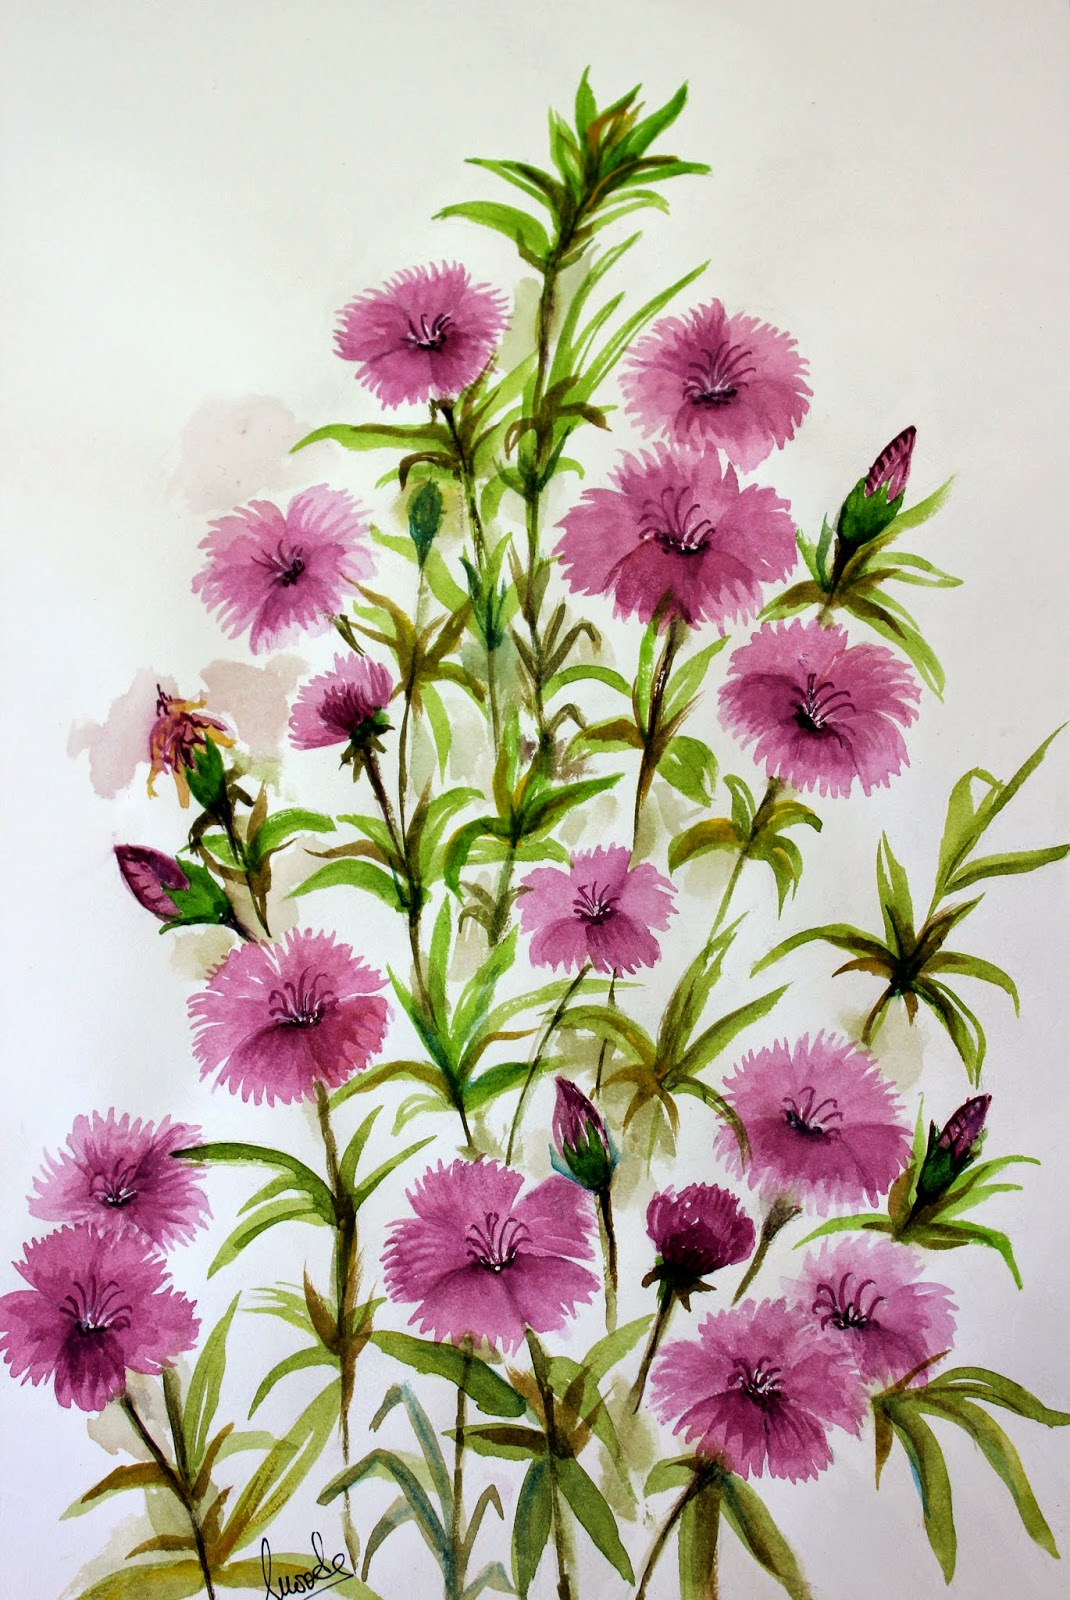 #Dianthus #purple #bouquet #bunch #flowers #watercolor #art #painting